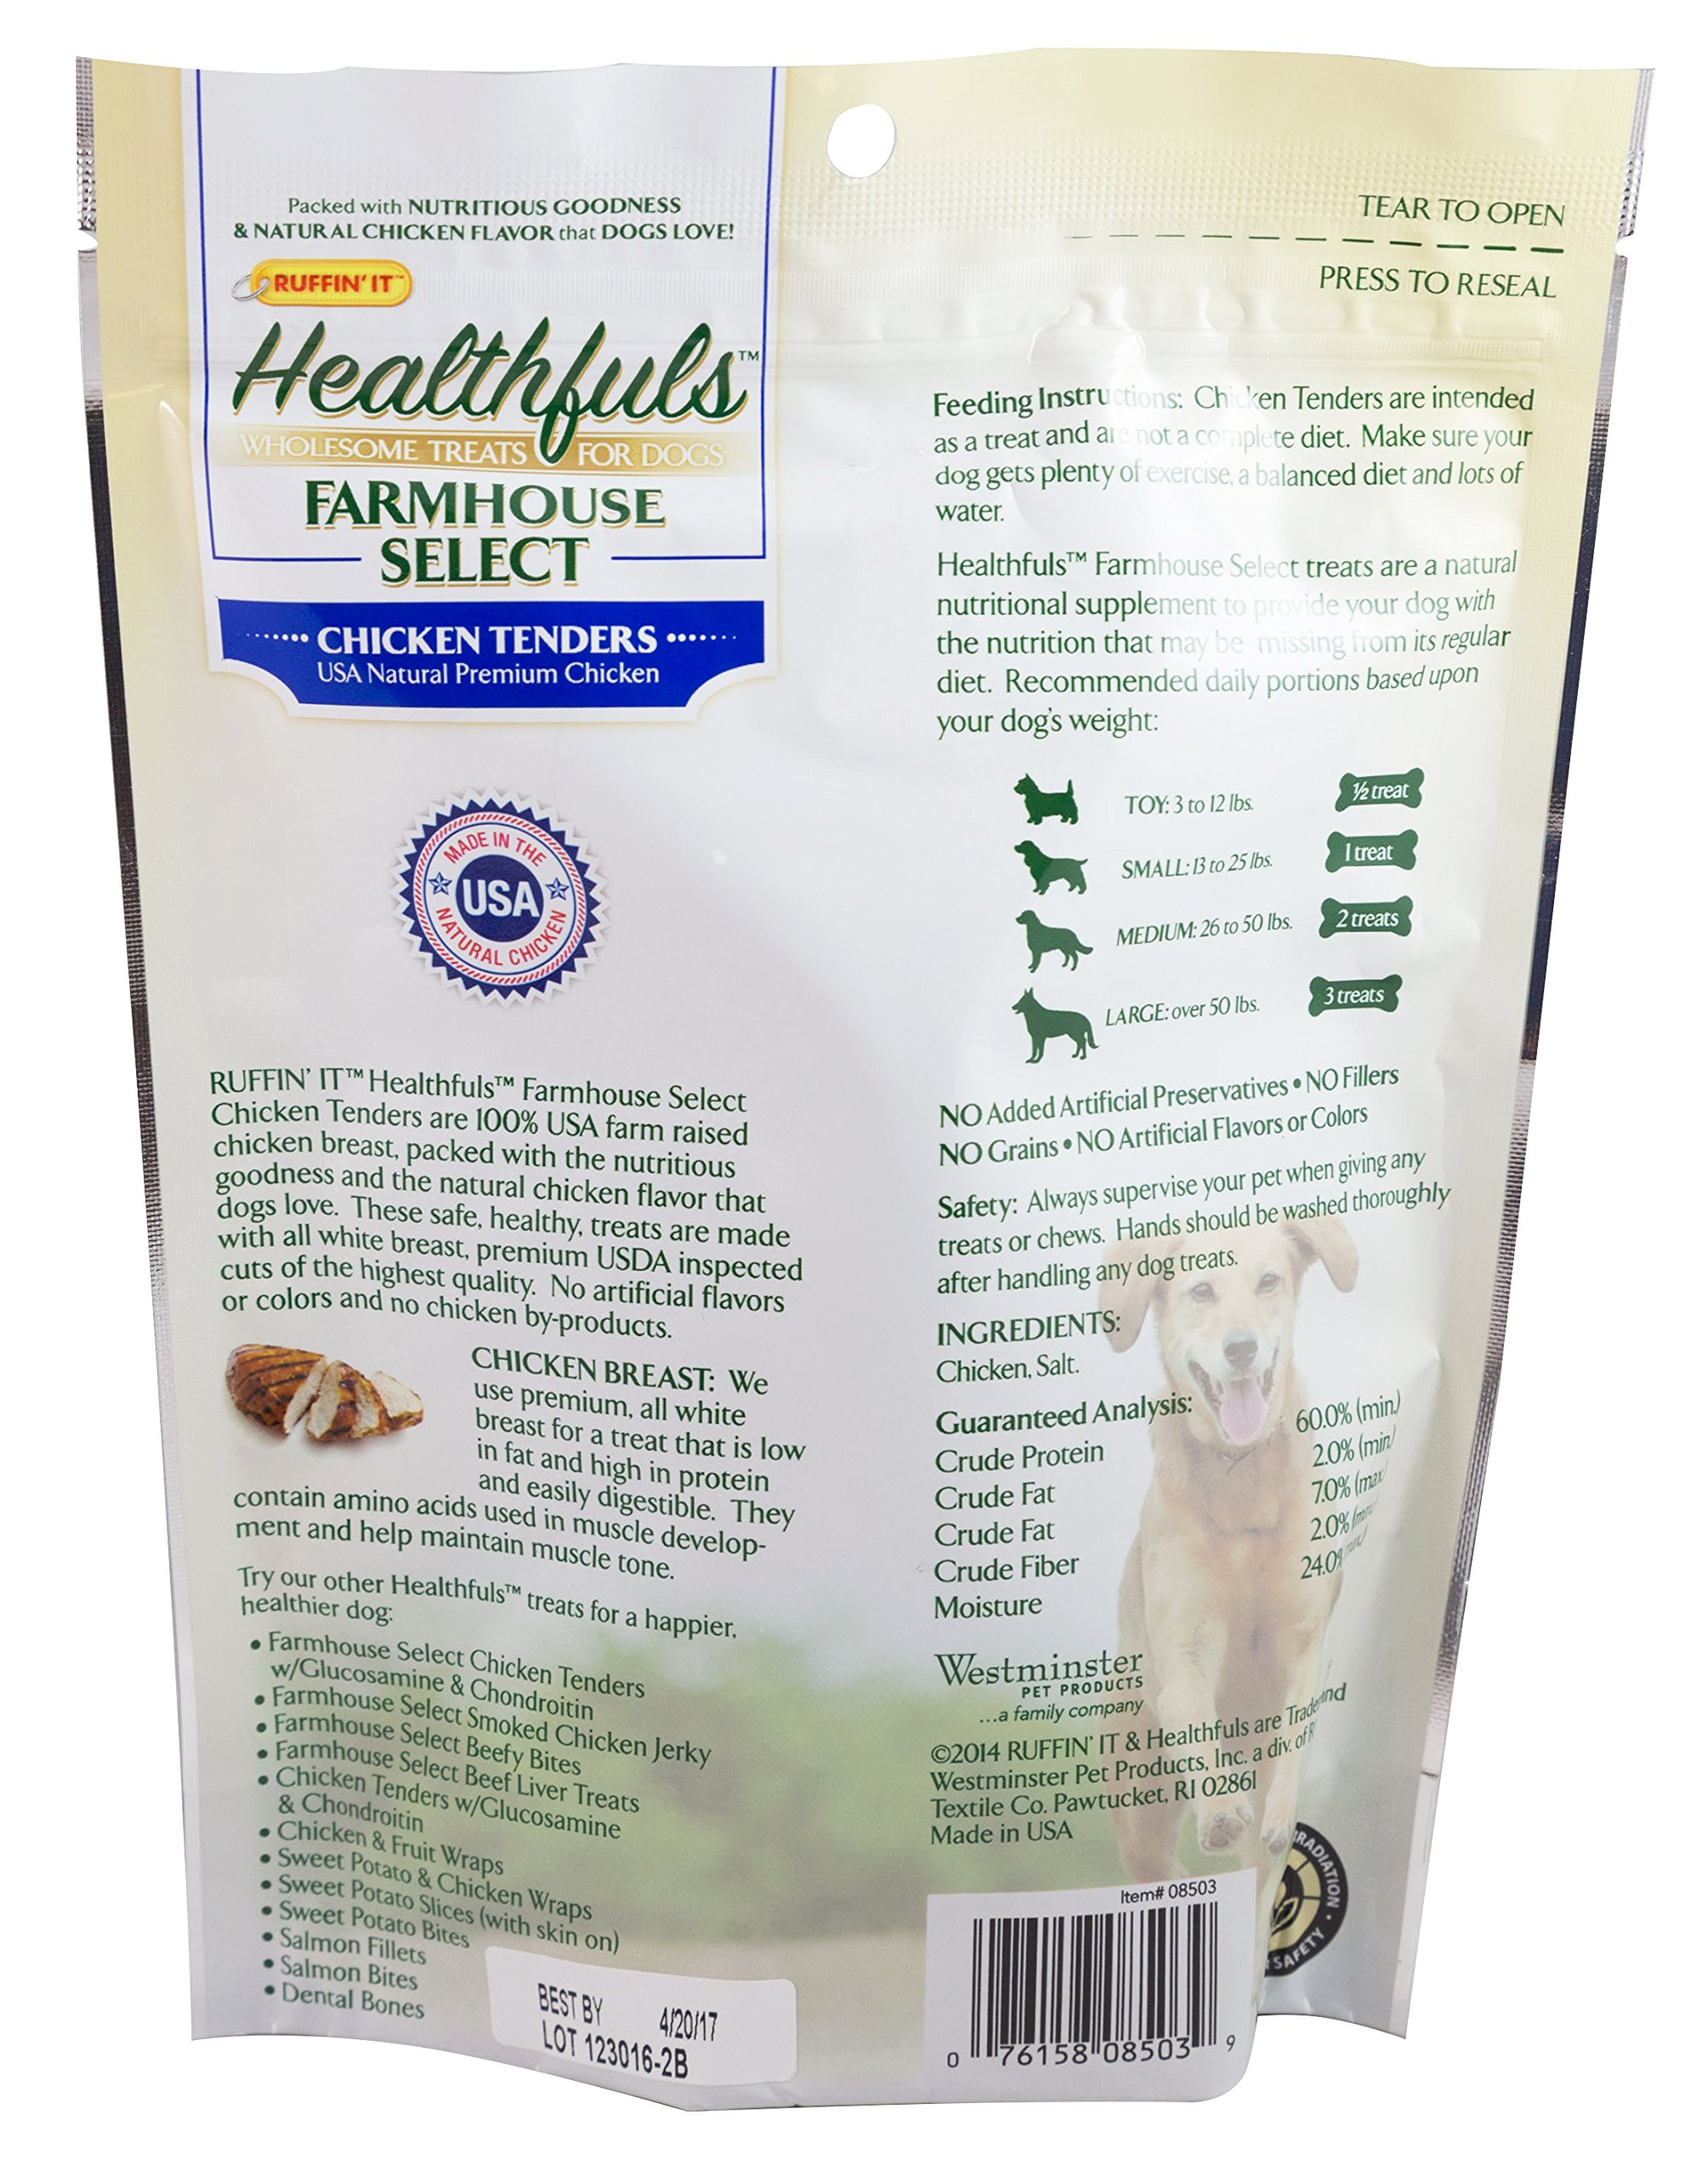 Ruffin It Healthfuls Wholesome Chicken Tenders Treat For Dogs - Made in USA, 3-Pack (12oz in Total) by Ruffin It (Image #3)